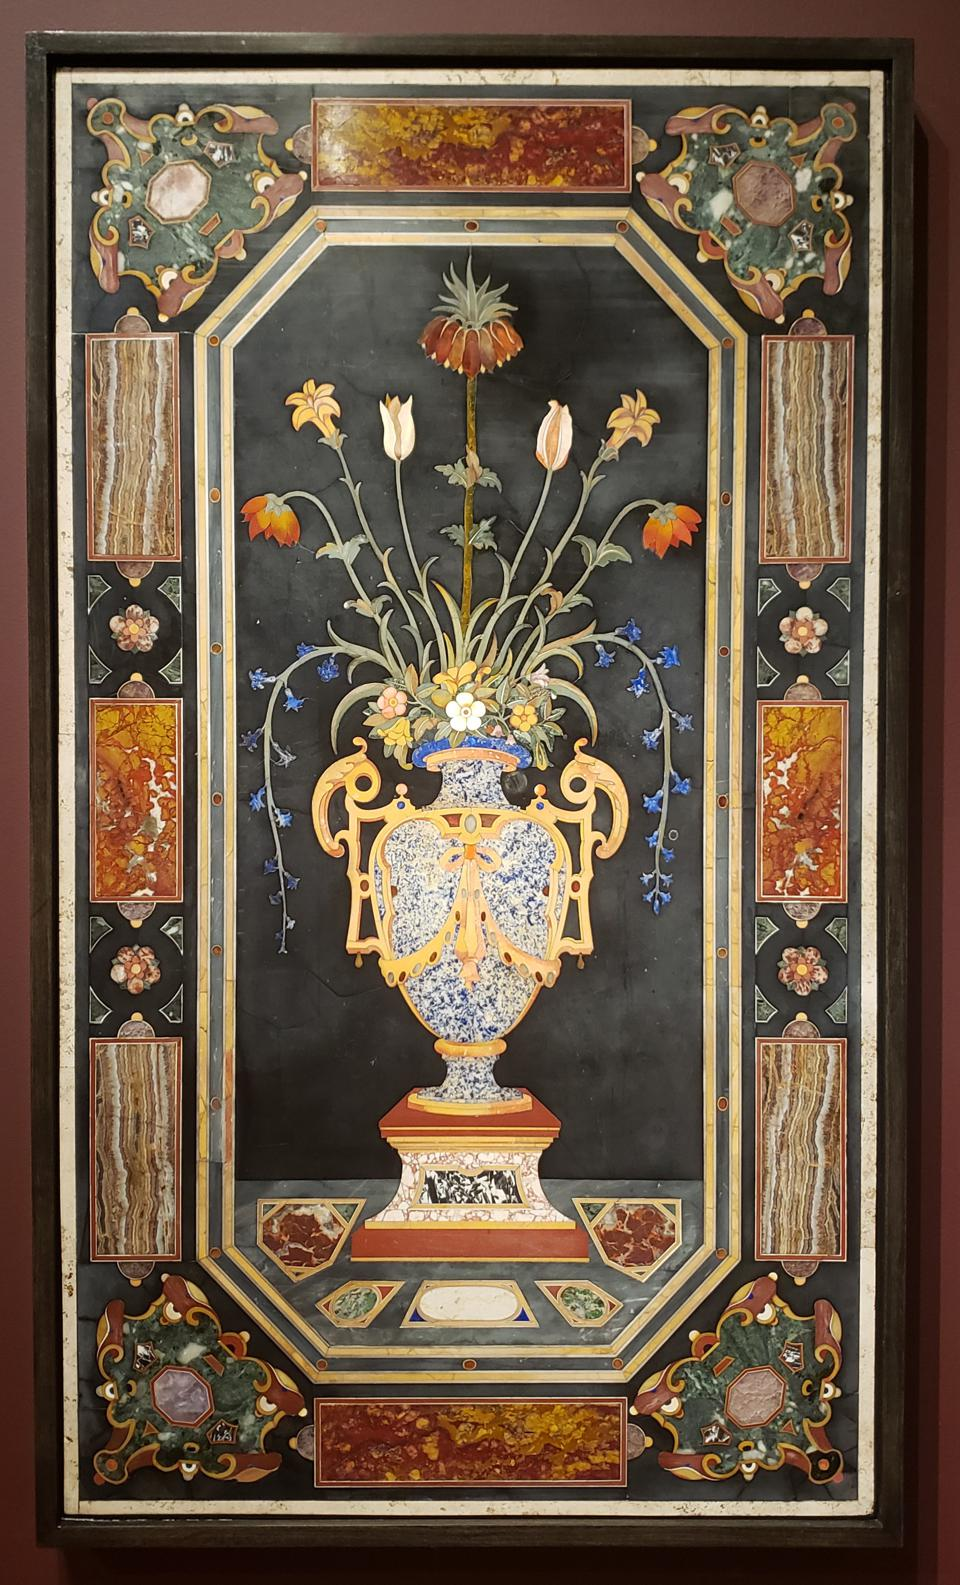 Galleria dei Lavori (now known as the Opificio delle Pietre Dure), Italian, founded 1588. Panel depicting a vase of flowers, c. 1625. Hard stones and marble. Gift of Marie G. Williams, 2008. Conservation funded by the Collectors Circle.